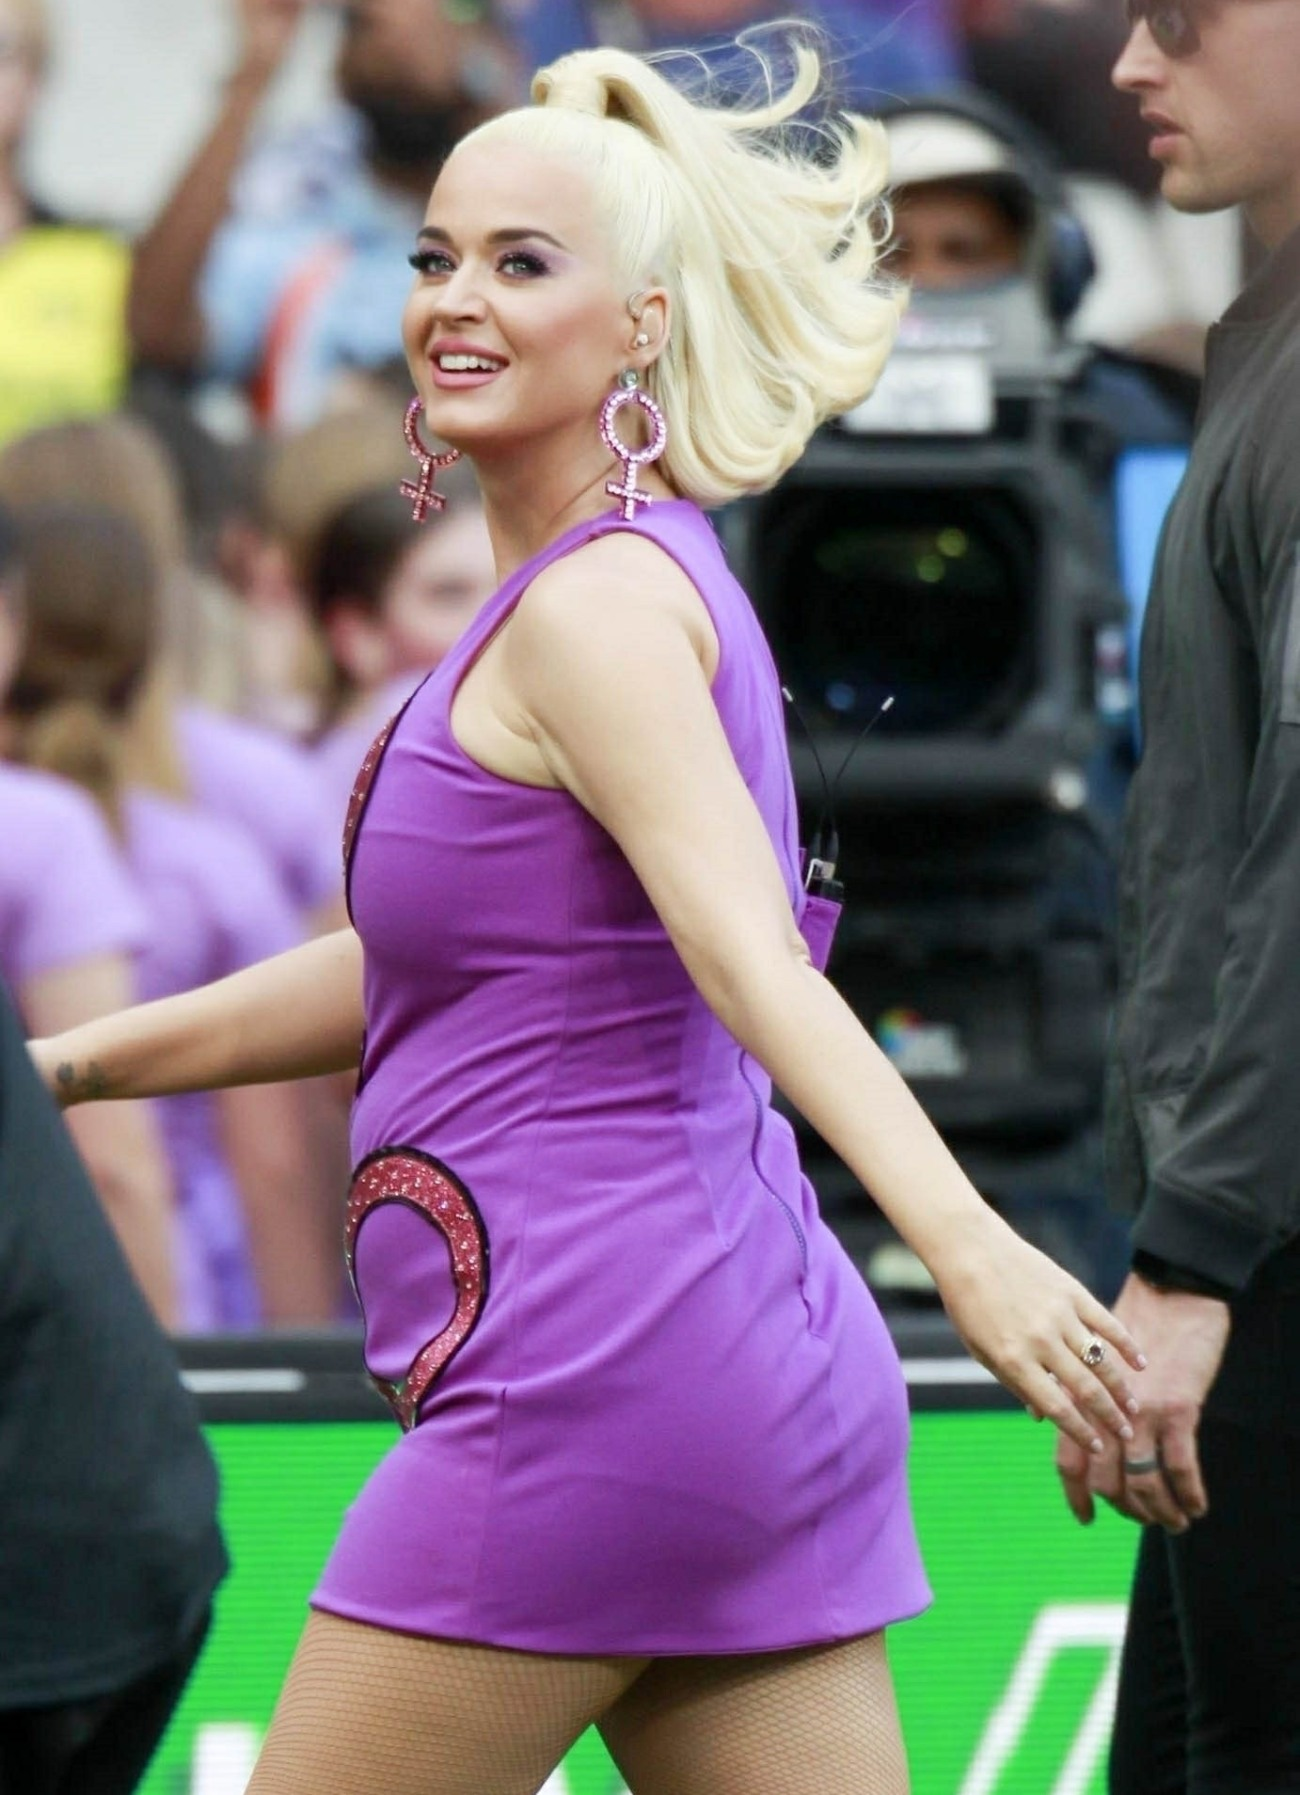 Katy Perry shows off her baby bump at the ICC Women's T20 Cricket World Cup Final in Melbourne!